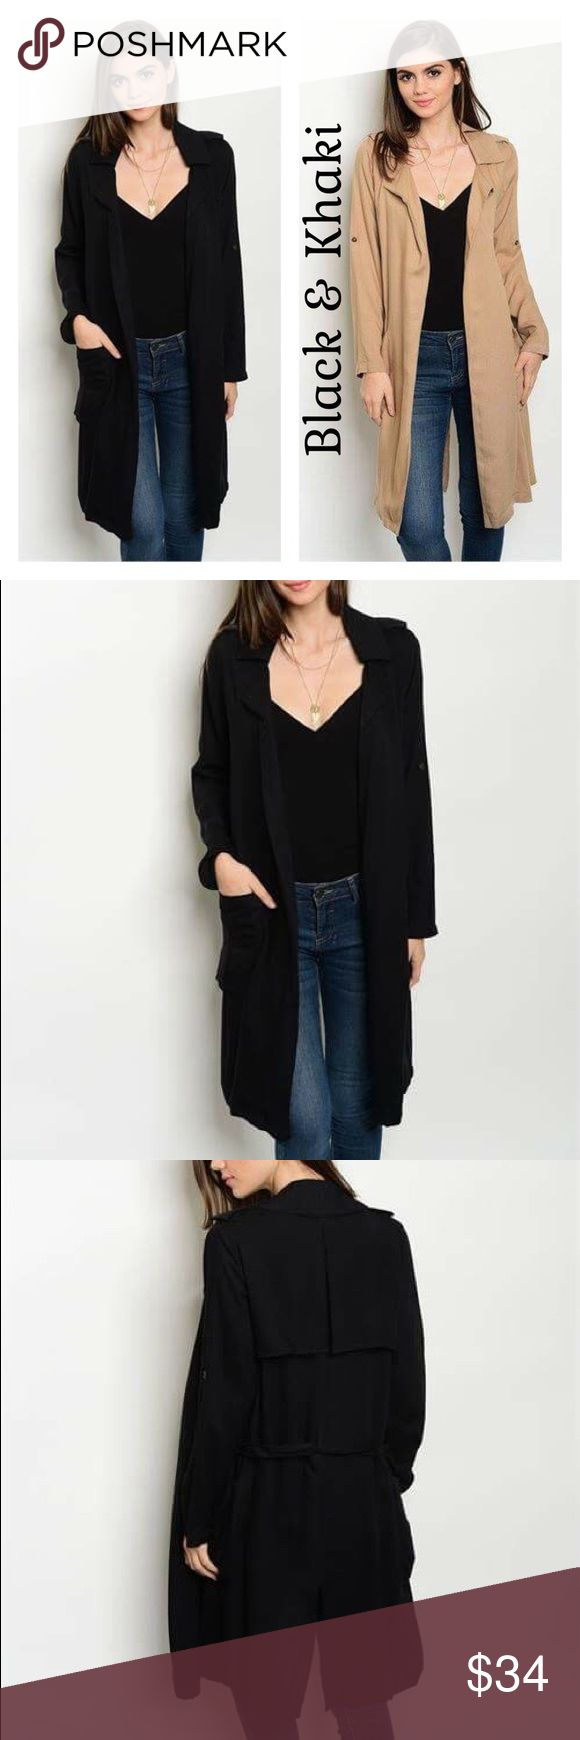 """Black Lightweight Trench Coat This listing is for a black lightweight trench coat.  Also available in khaki in a separate listing.  100% rayon.  Length 39"""". Jackets & Coats Trench Coats"""